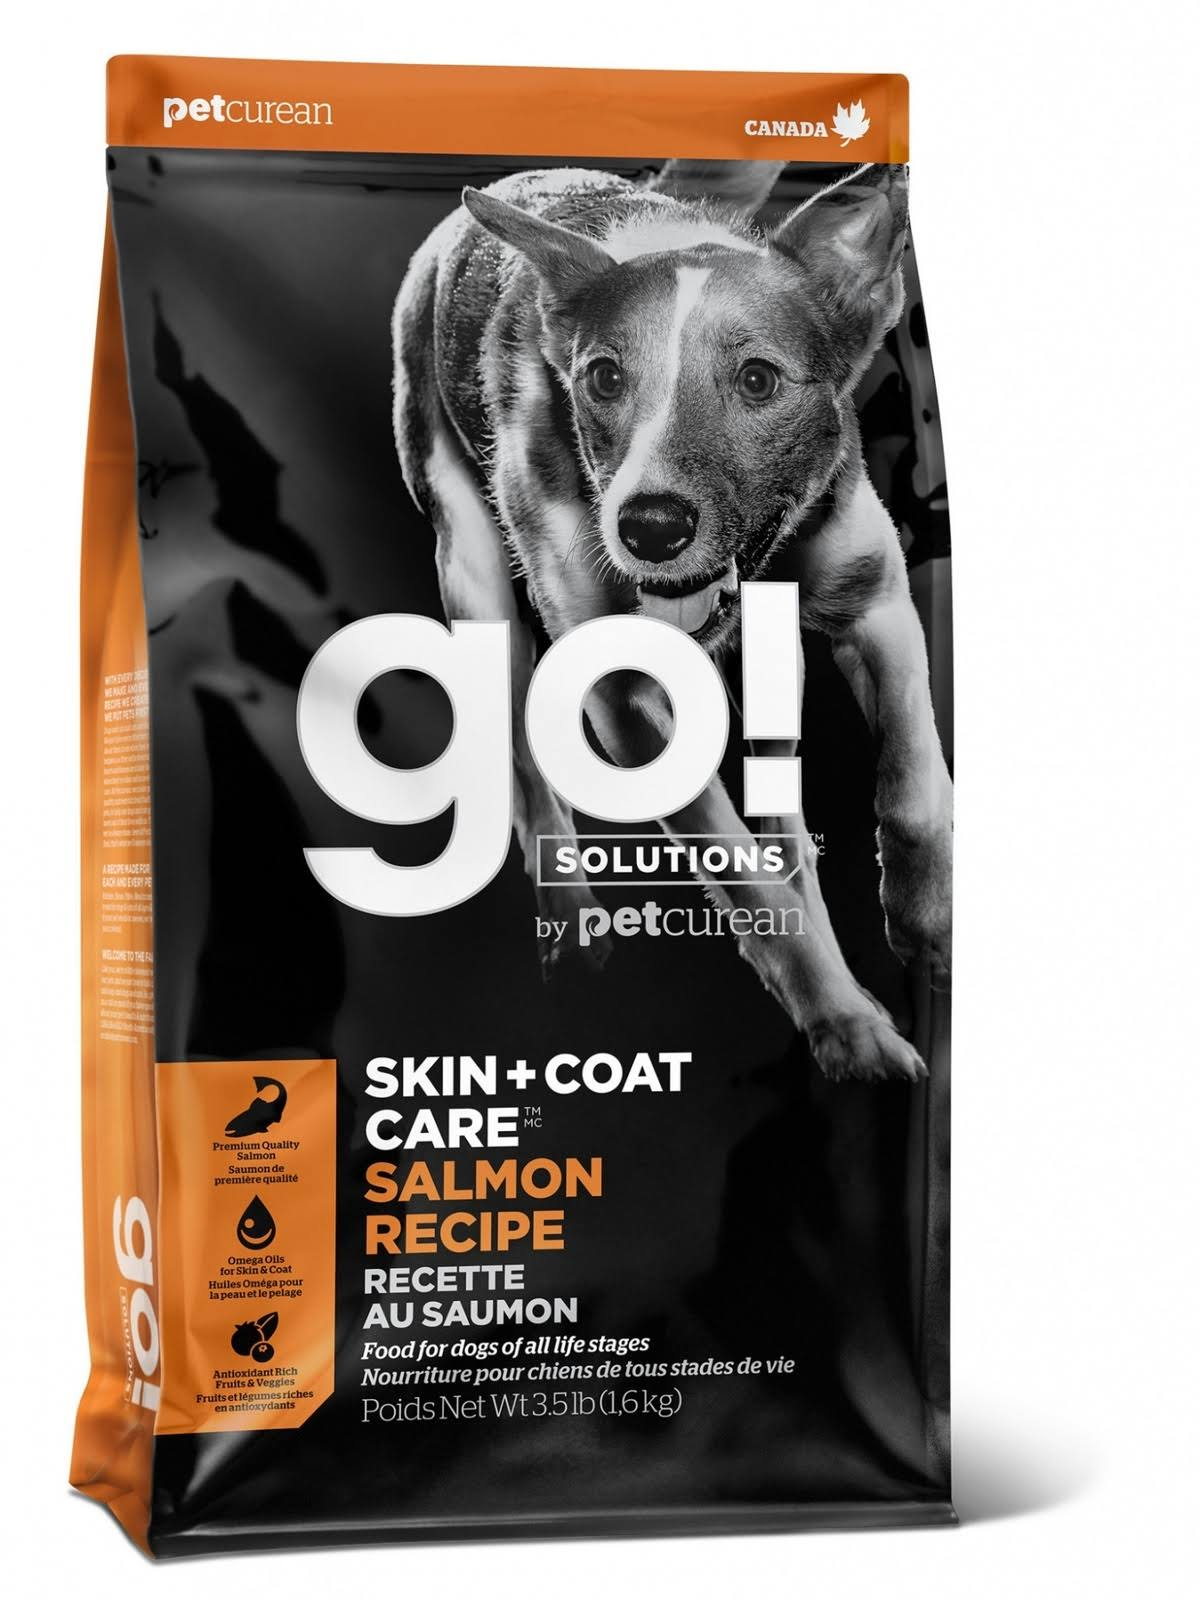 Go! Solutions Skin + Coat Care Salmon Recipe Dry Dog Food, 25 lb